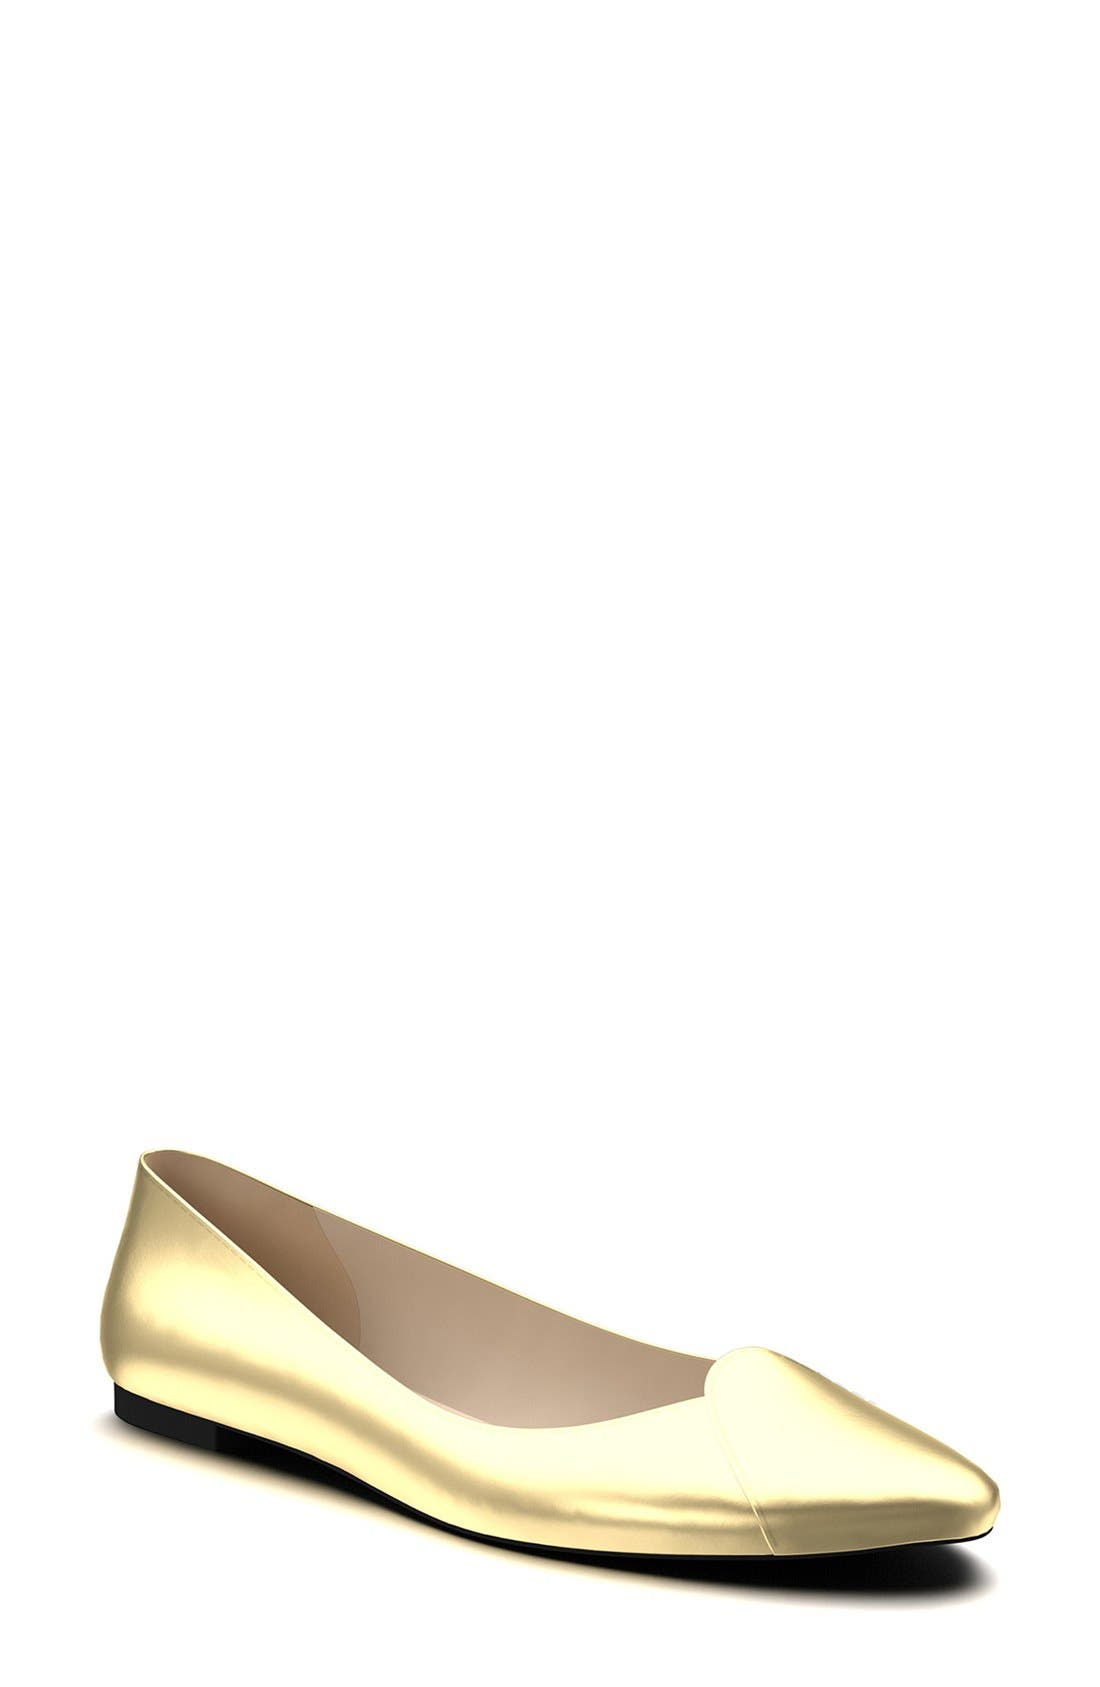 Alternate Image 1 Selected - Shoes of Prey Loafer Ballet Flat (Women) (Nordstrom Exclusive)